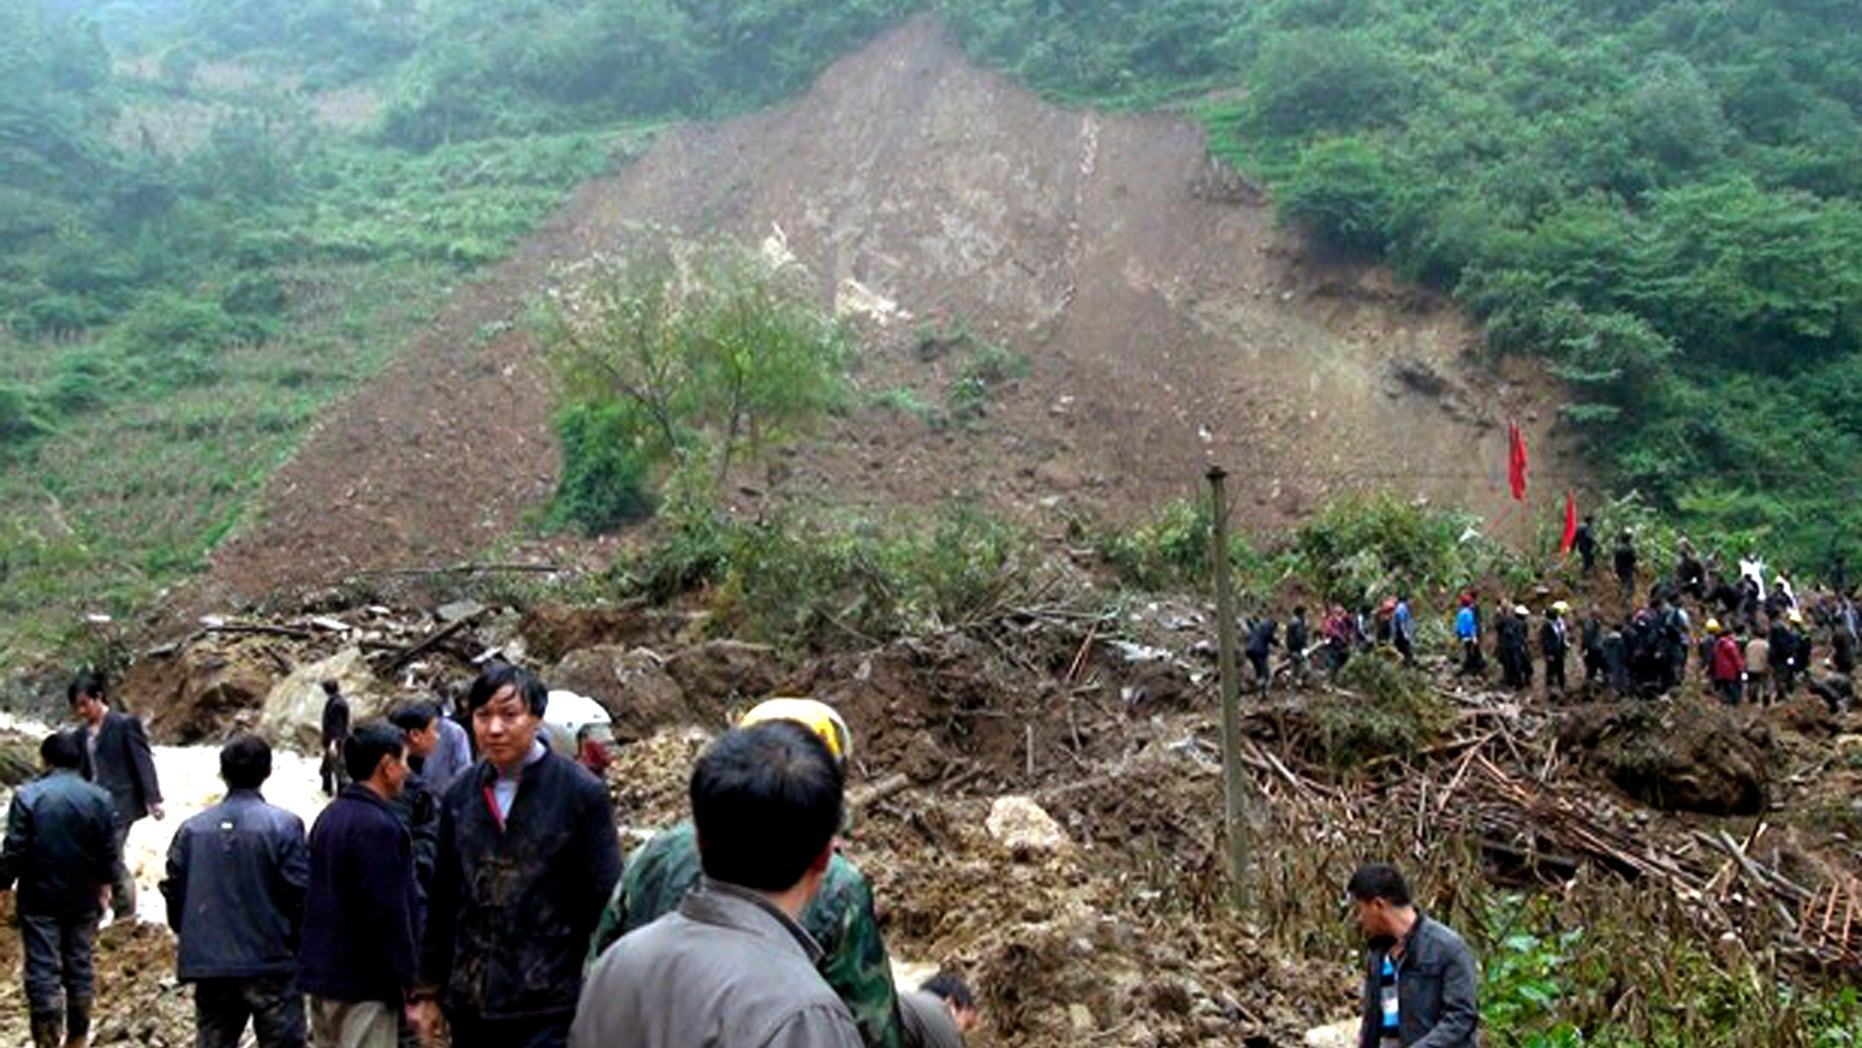 In this photo taken Thursday Oct. 4, 2012, residents gather at a landslide in Yiliang county in southwest China's Yunnan province. All 18 elementary school students buried in the landslide were confirmed dead Friday, while one other person remained missing a day after the hillside collapsed and smothered part of a village in mountainous southwestern China. (AP Photo) CHINA OUT